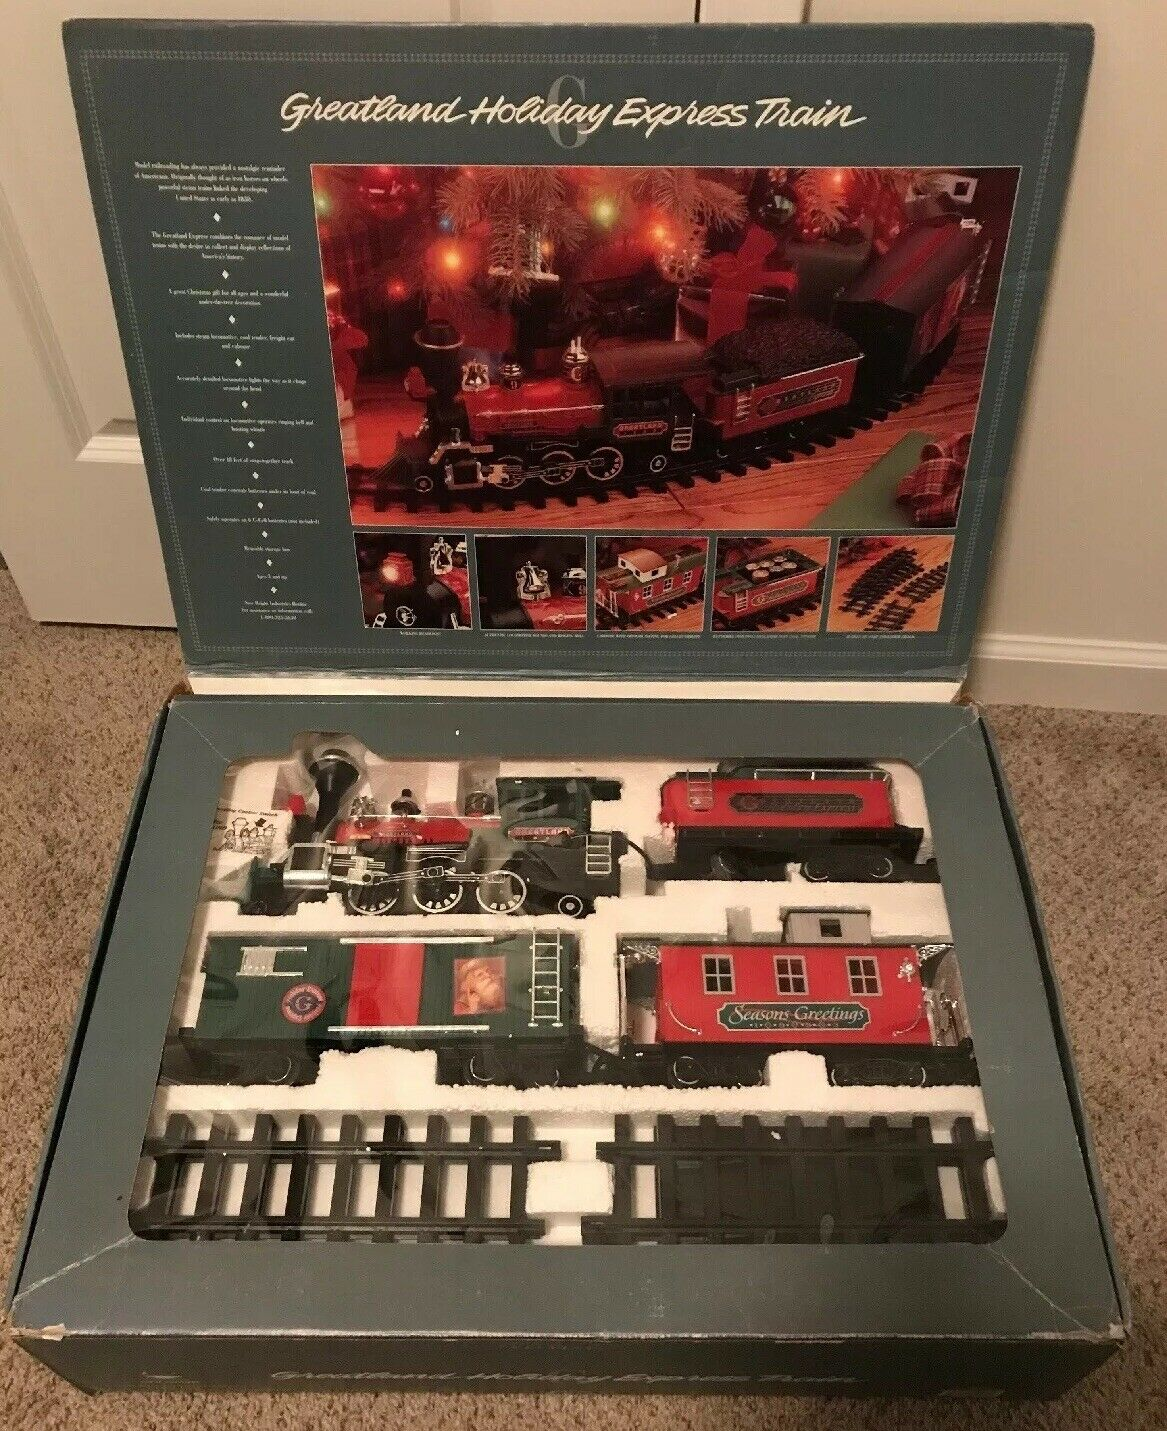 Vtg New Bright Greatland Holiday Express G Scale Model Toy Train 1993